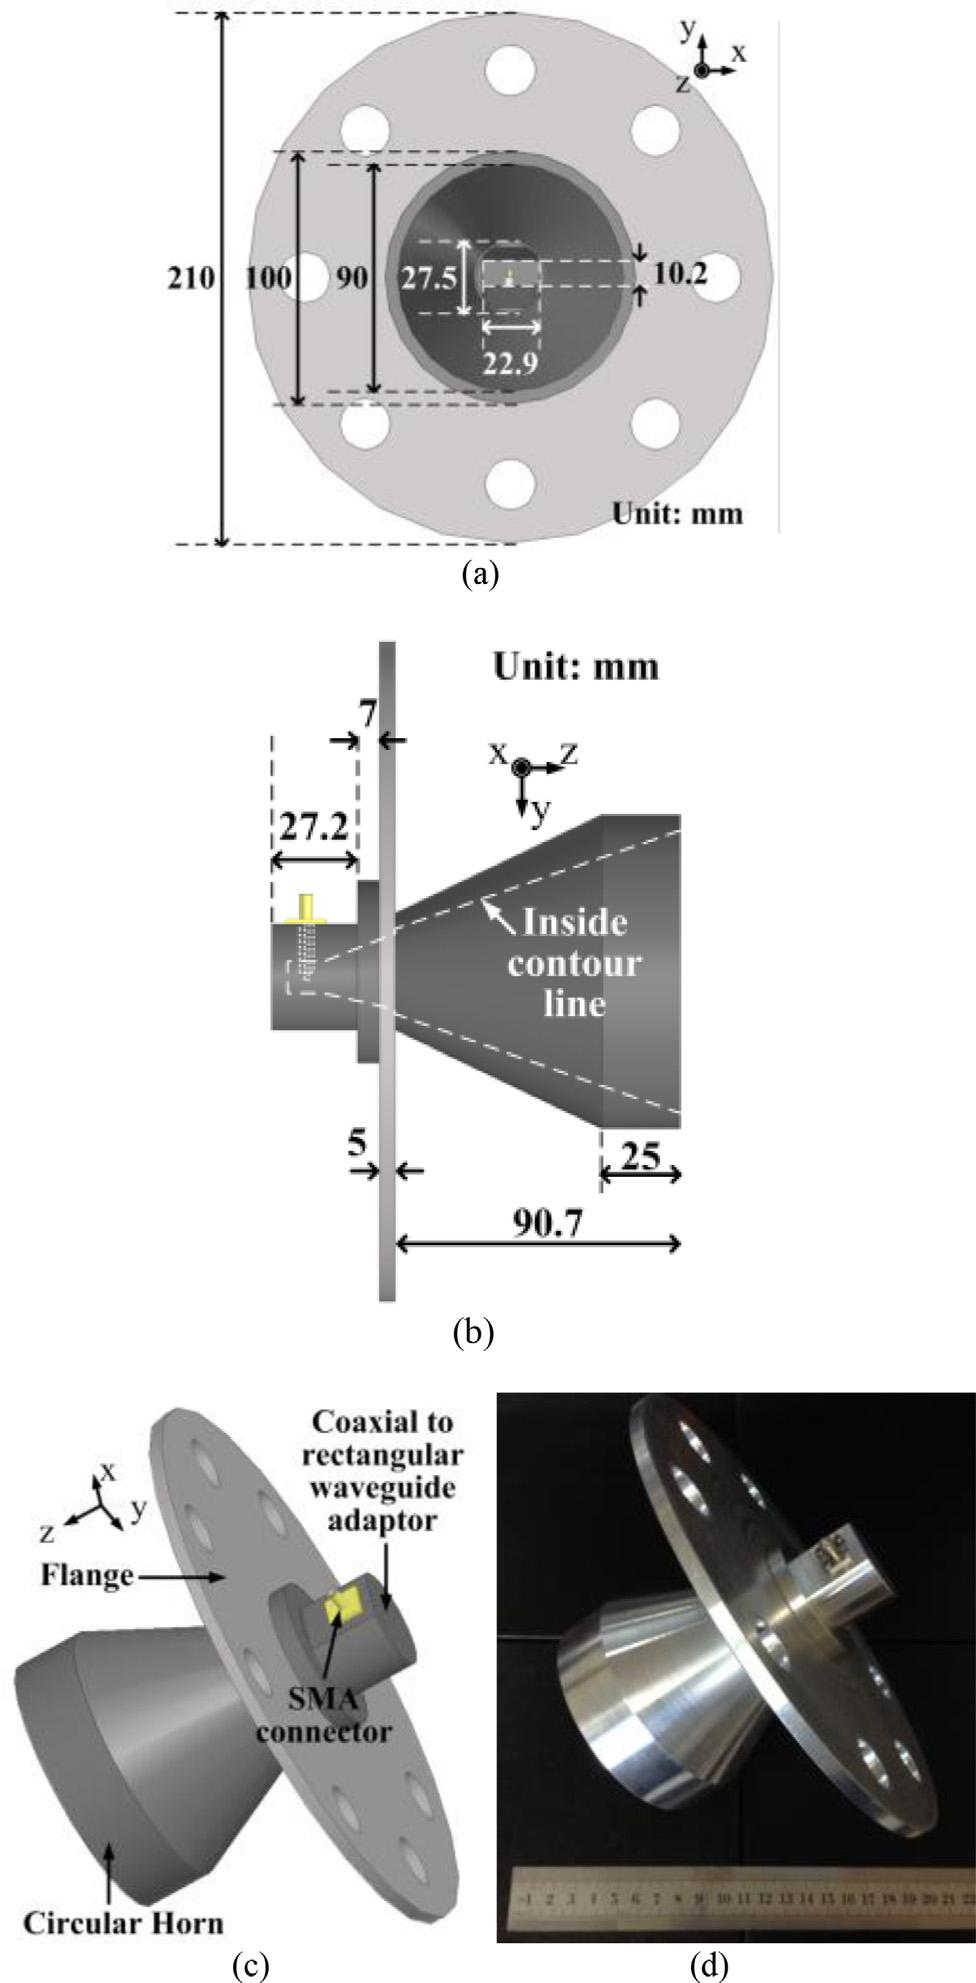 Figure 1 shows the proposed antenna and the model its based upon (d). Image via Microwave and Optical Technology Letters.